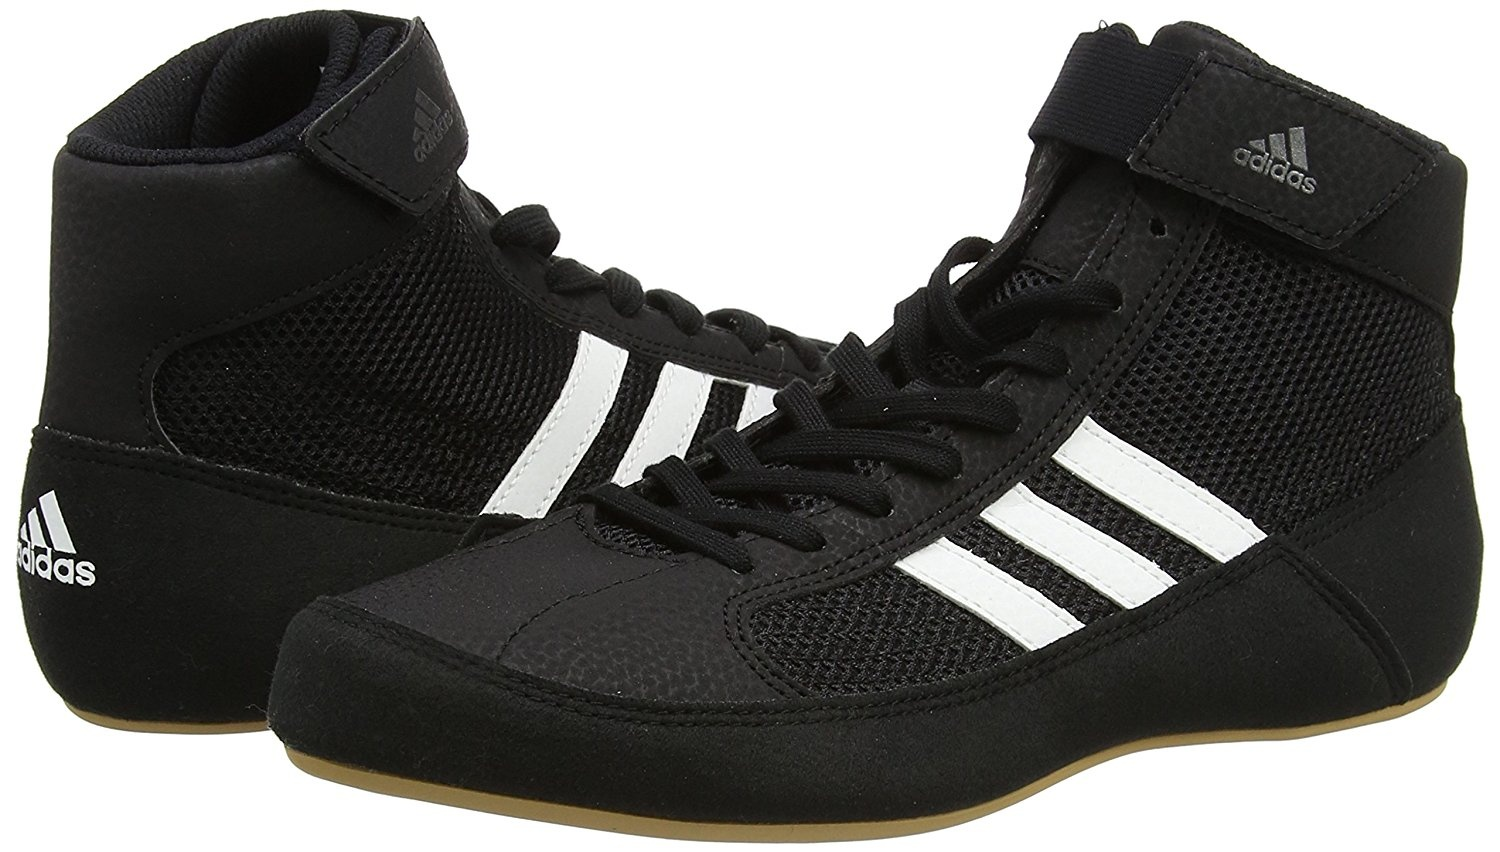 Inscribirse Contando insectos Antemano  adidas Unisex Adults' Aq3325 Wrestling Shoes by adidas - Shop Online for  Sports & Outdoors in New Zealand